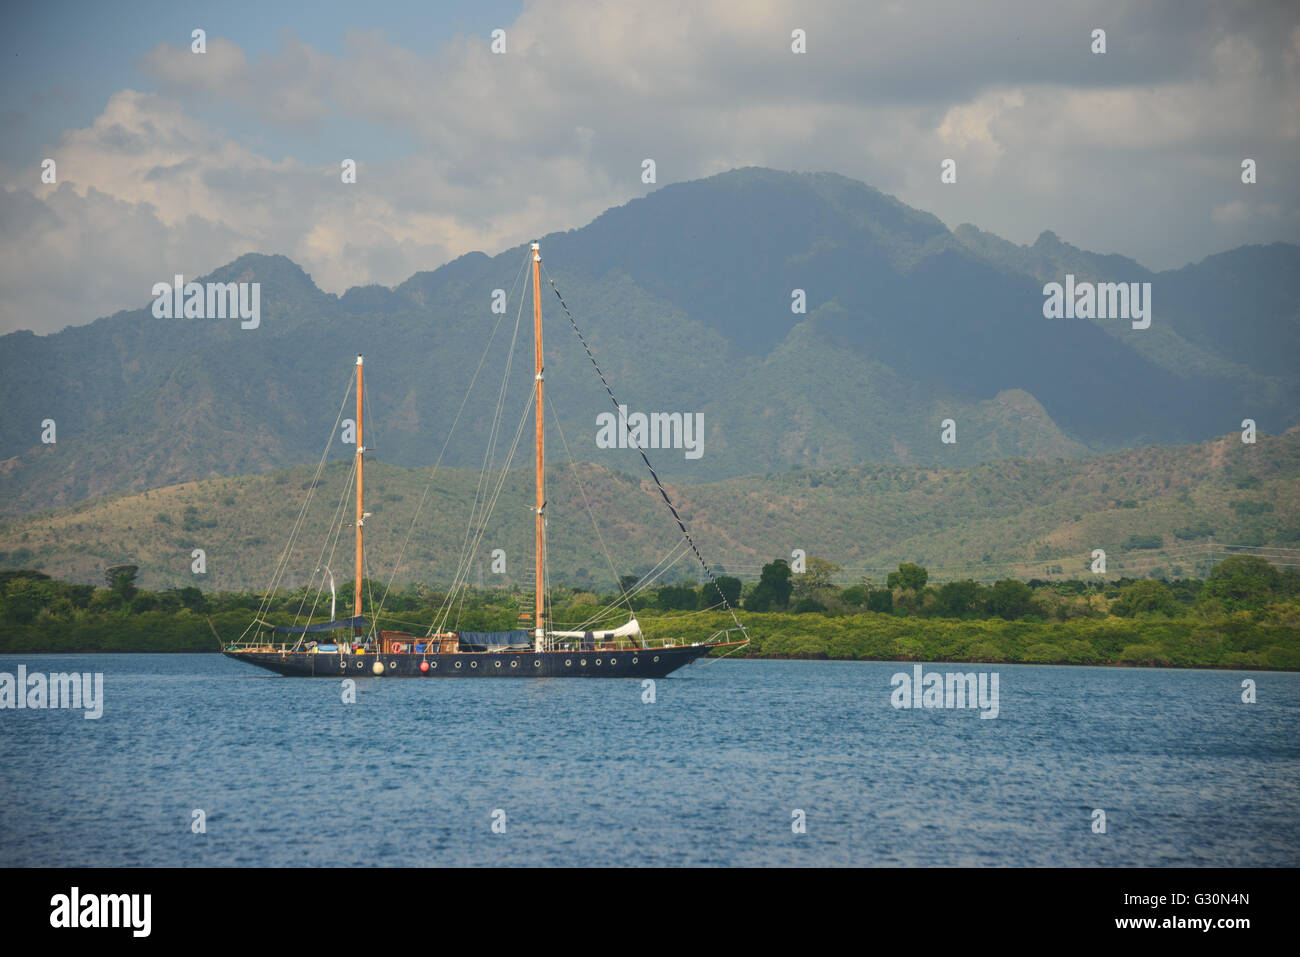 Yacht off the north coast of Bali, Indonesia - Stock Image